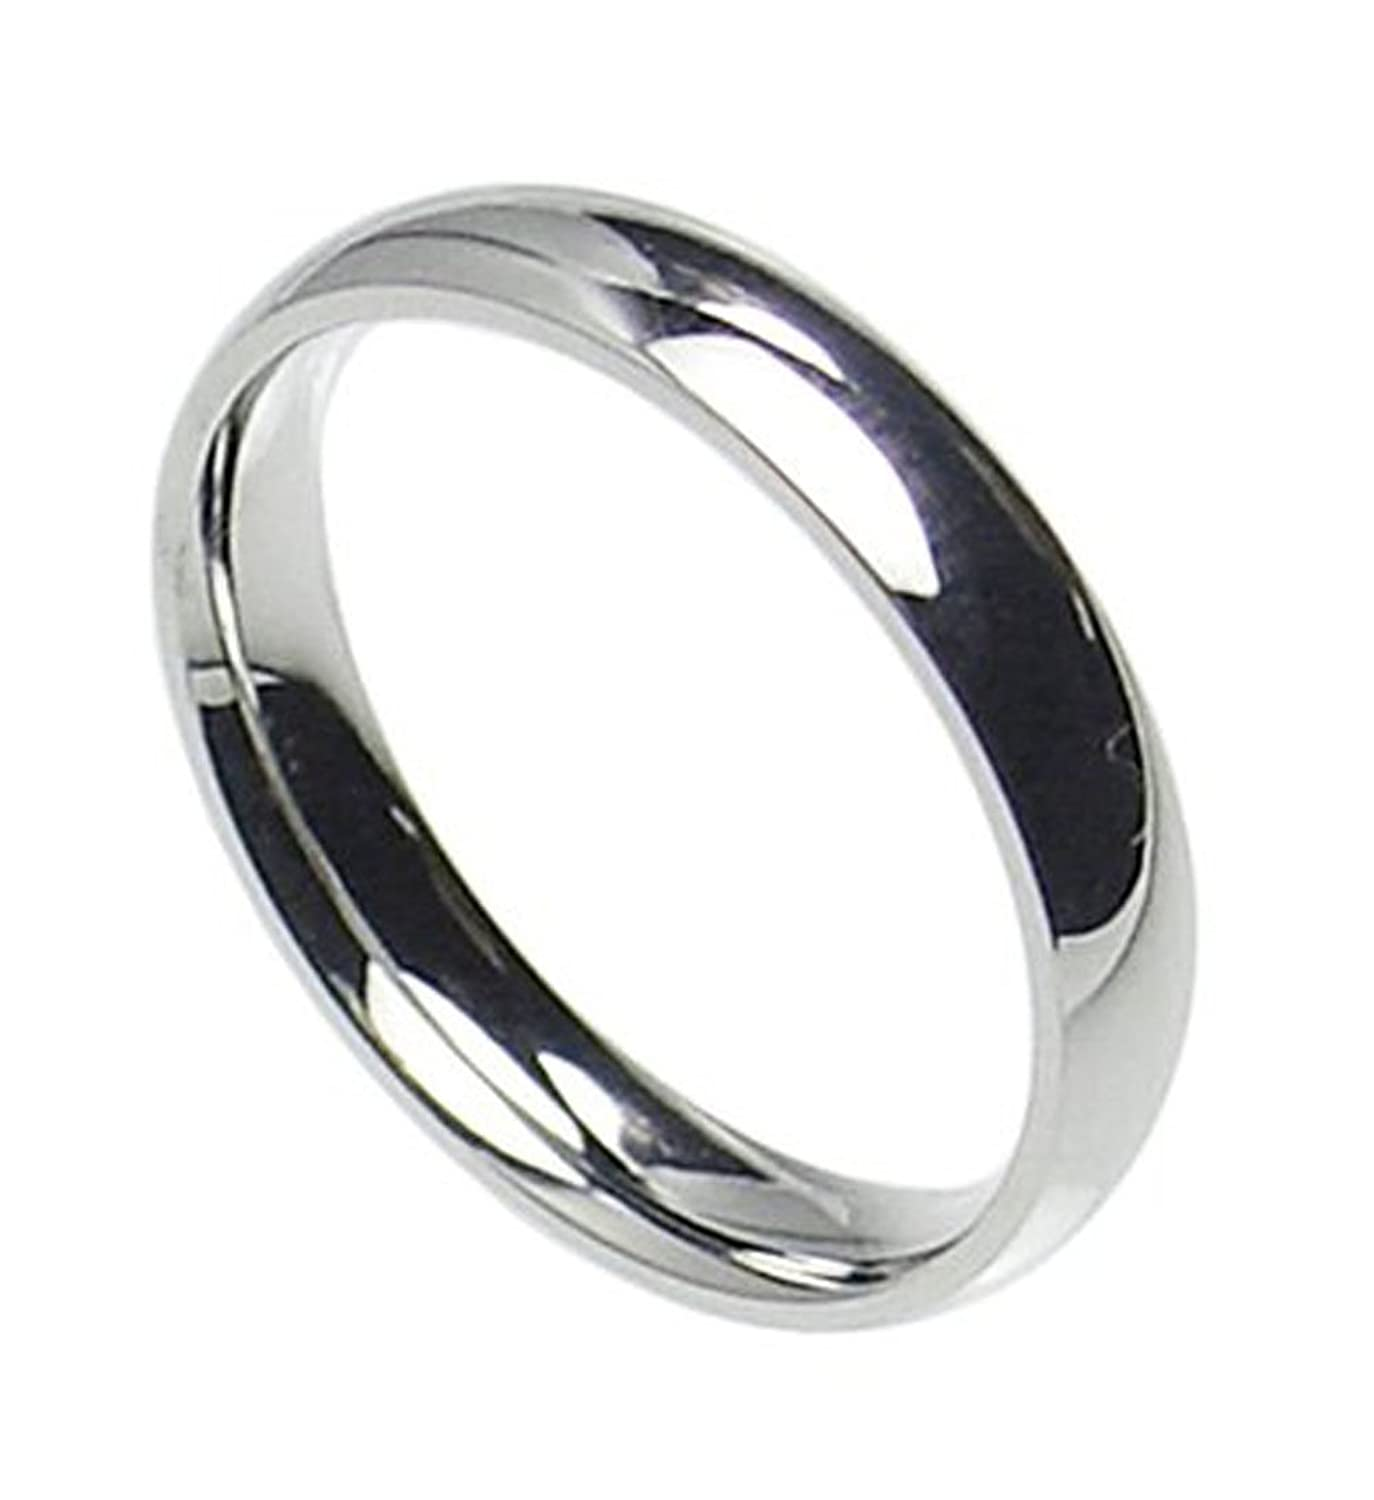 with handphone mens ideas wedding friends black steel can rings that ten your band share great ring sdp download you by stainless tablet size